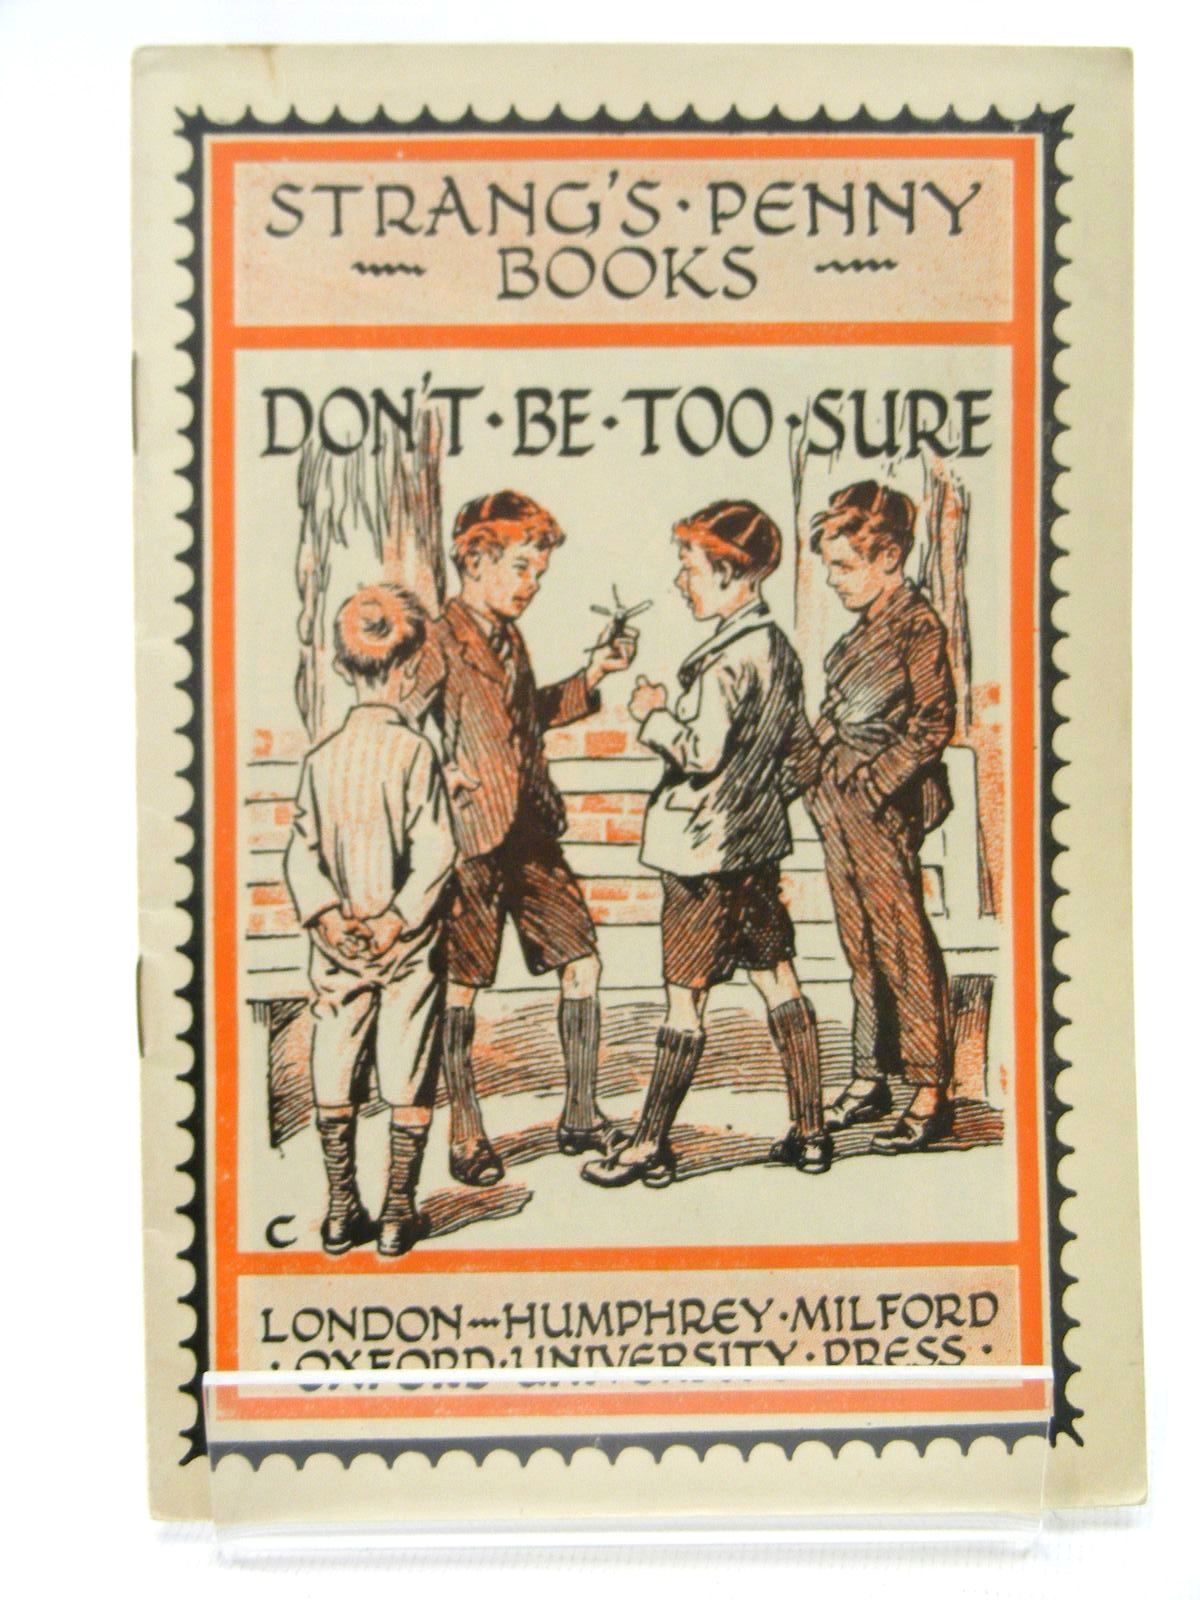 Photo of STRANG'S PENNY BOOKS DON'T BE TOO SURE written by Strang, Herbert published by Humphrey Milford, Oxford University Press (STOCK CODE: 2124879)  for sale by Stella & Rose's Books